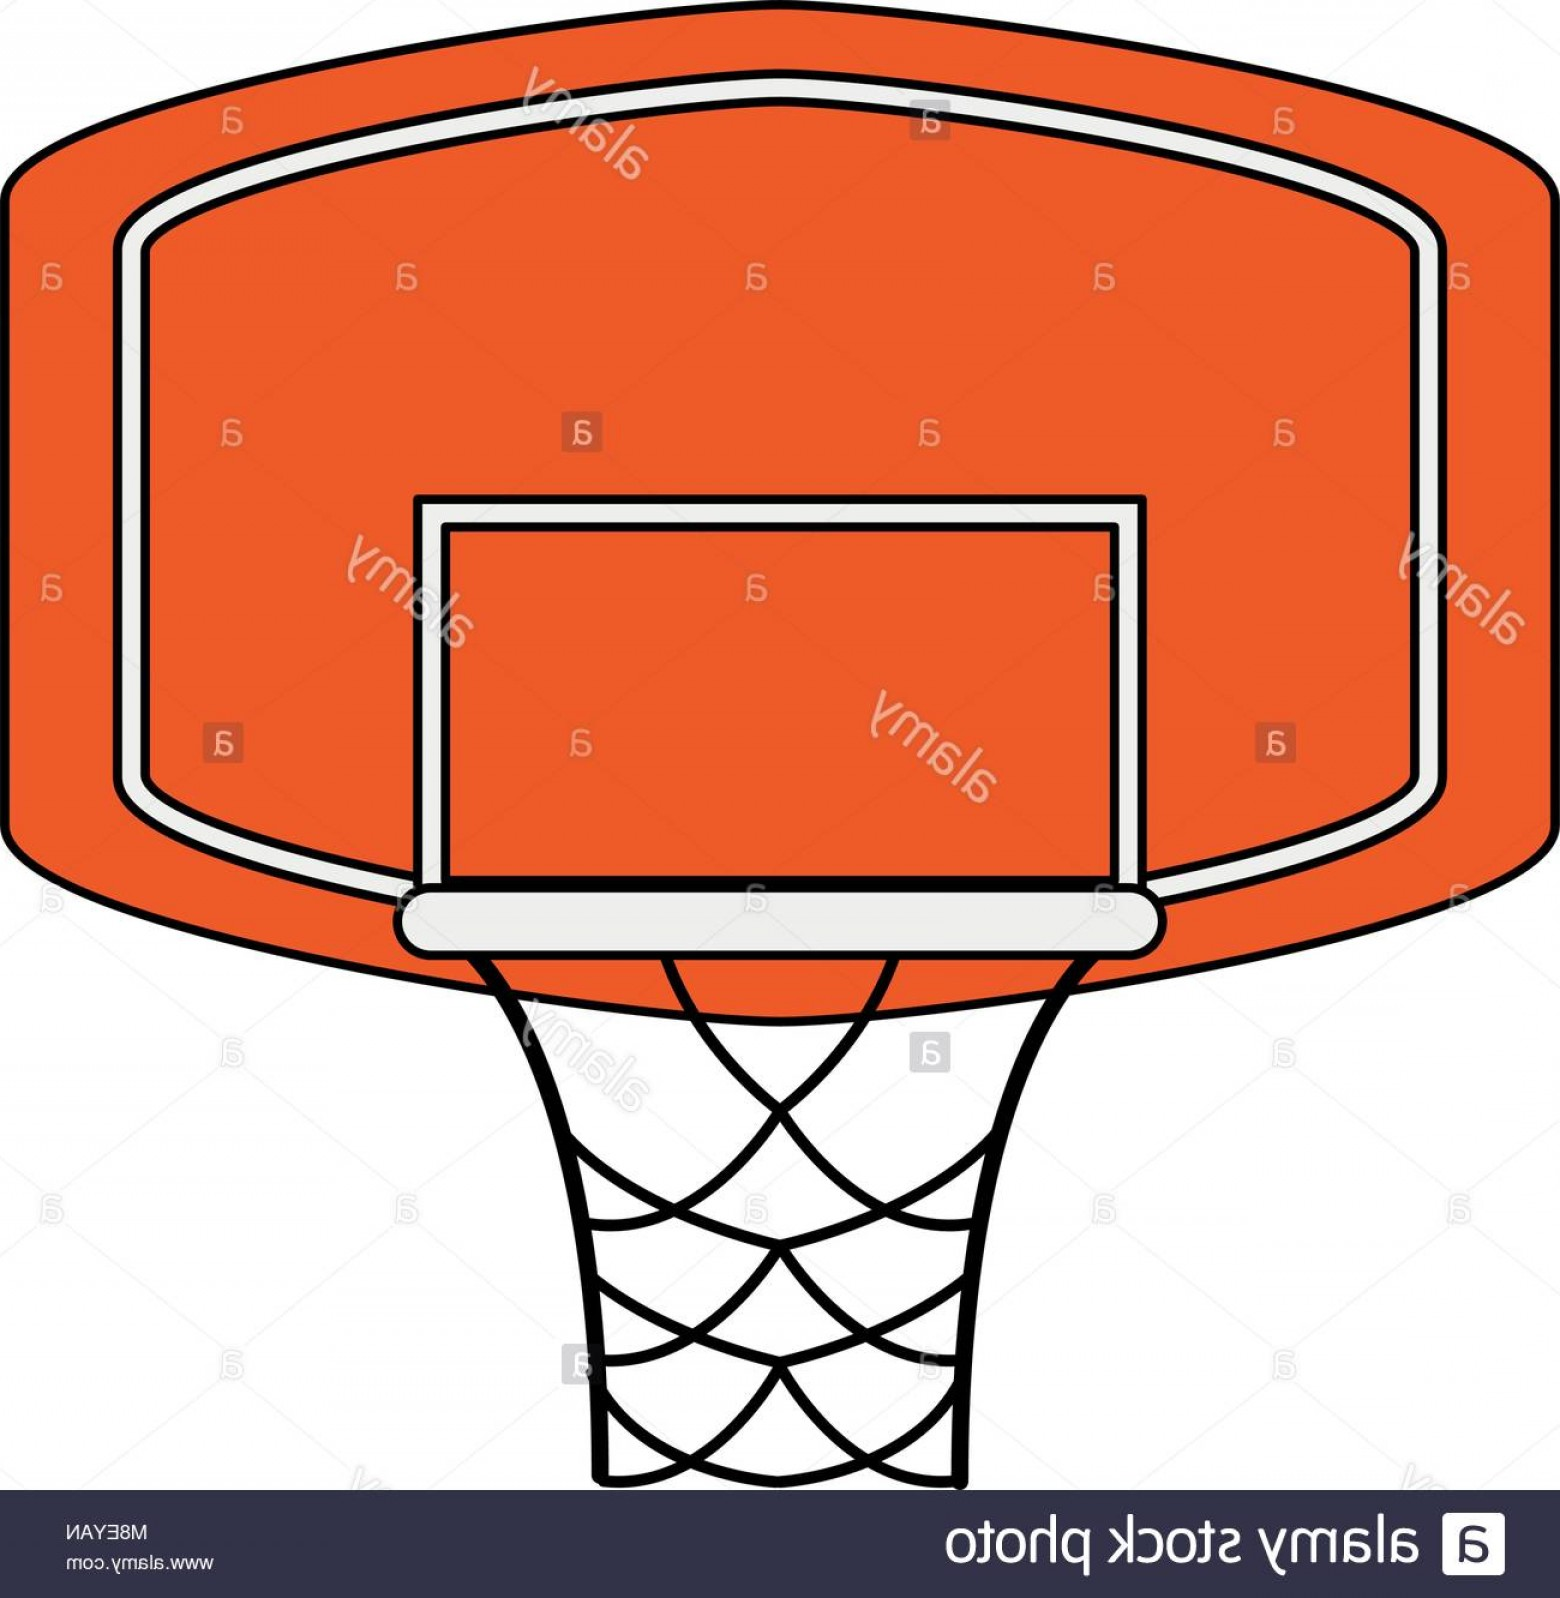 Basketball Vector Graphic Designs: Stock Photo Basketball Score Board Vector Illustration Graphic Design Vector Illustration